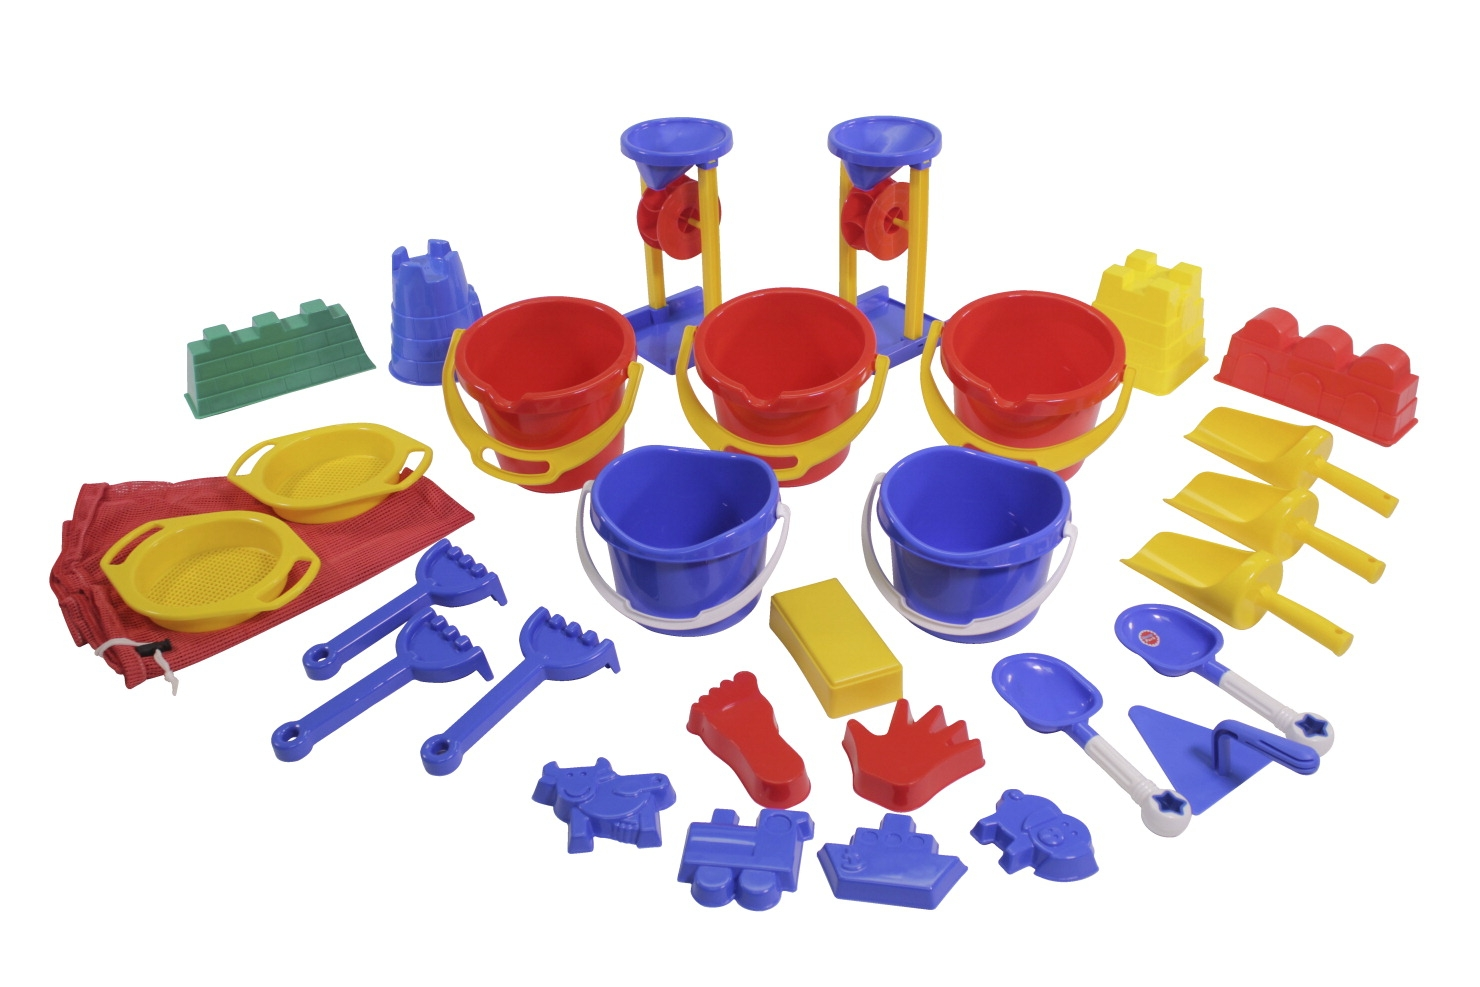 Toys Beach & Sand Toys - 259560 - Childcraft Sand Activity Set 259560